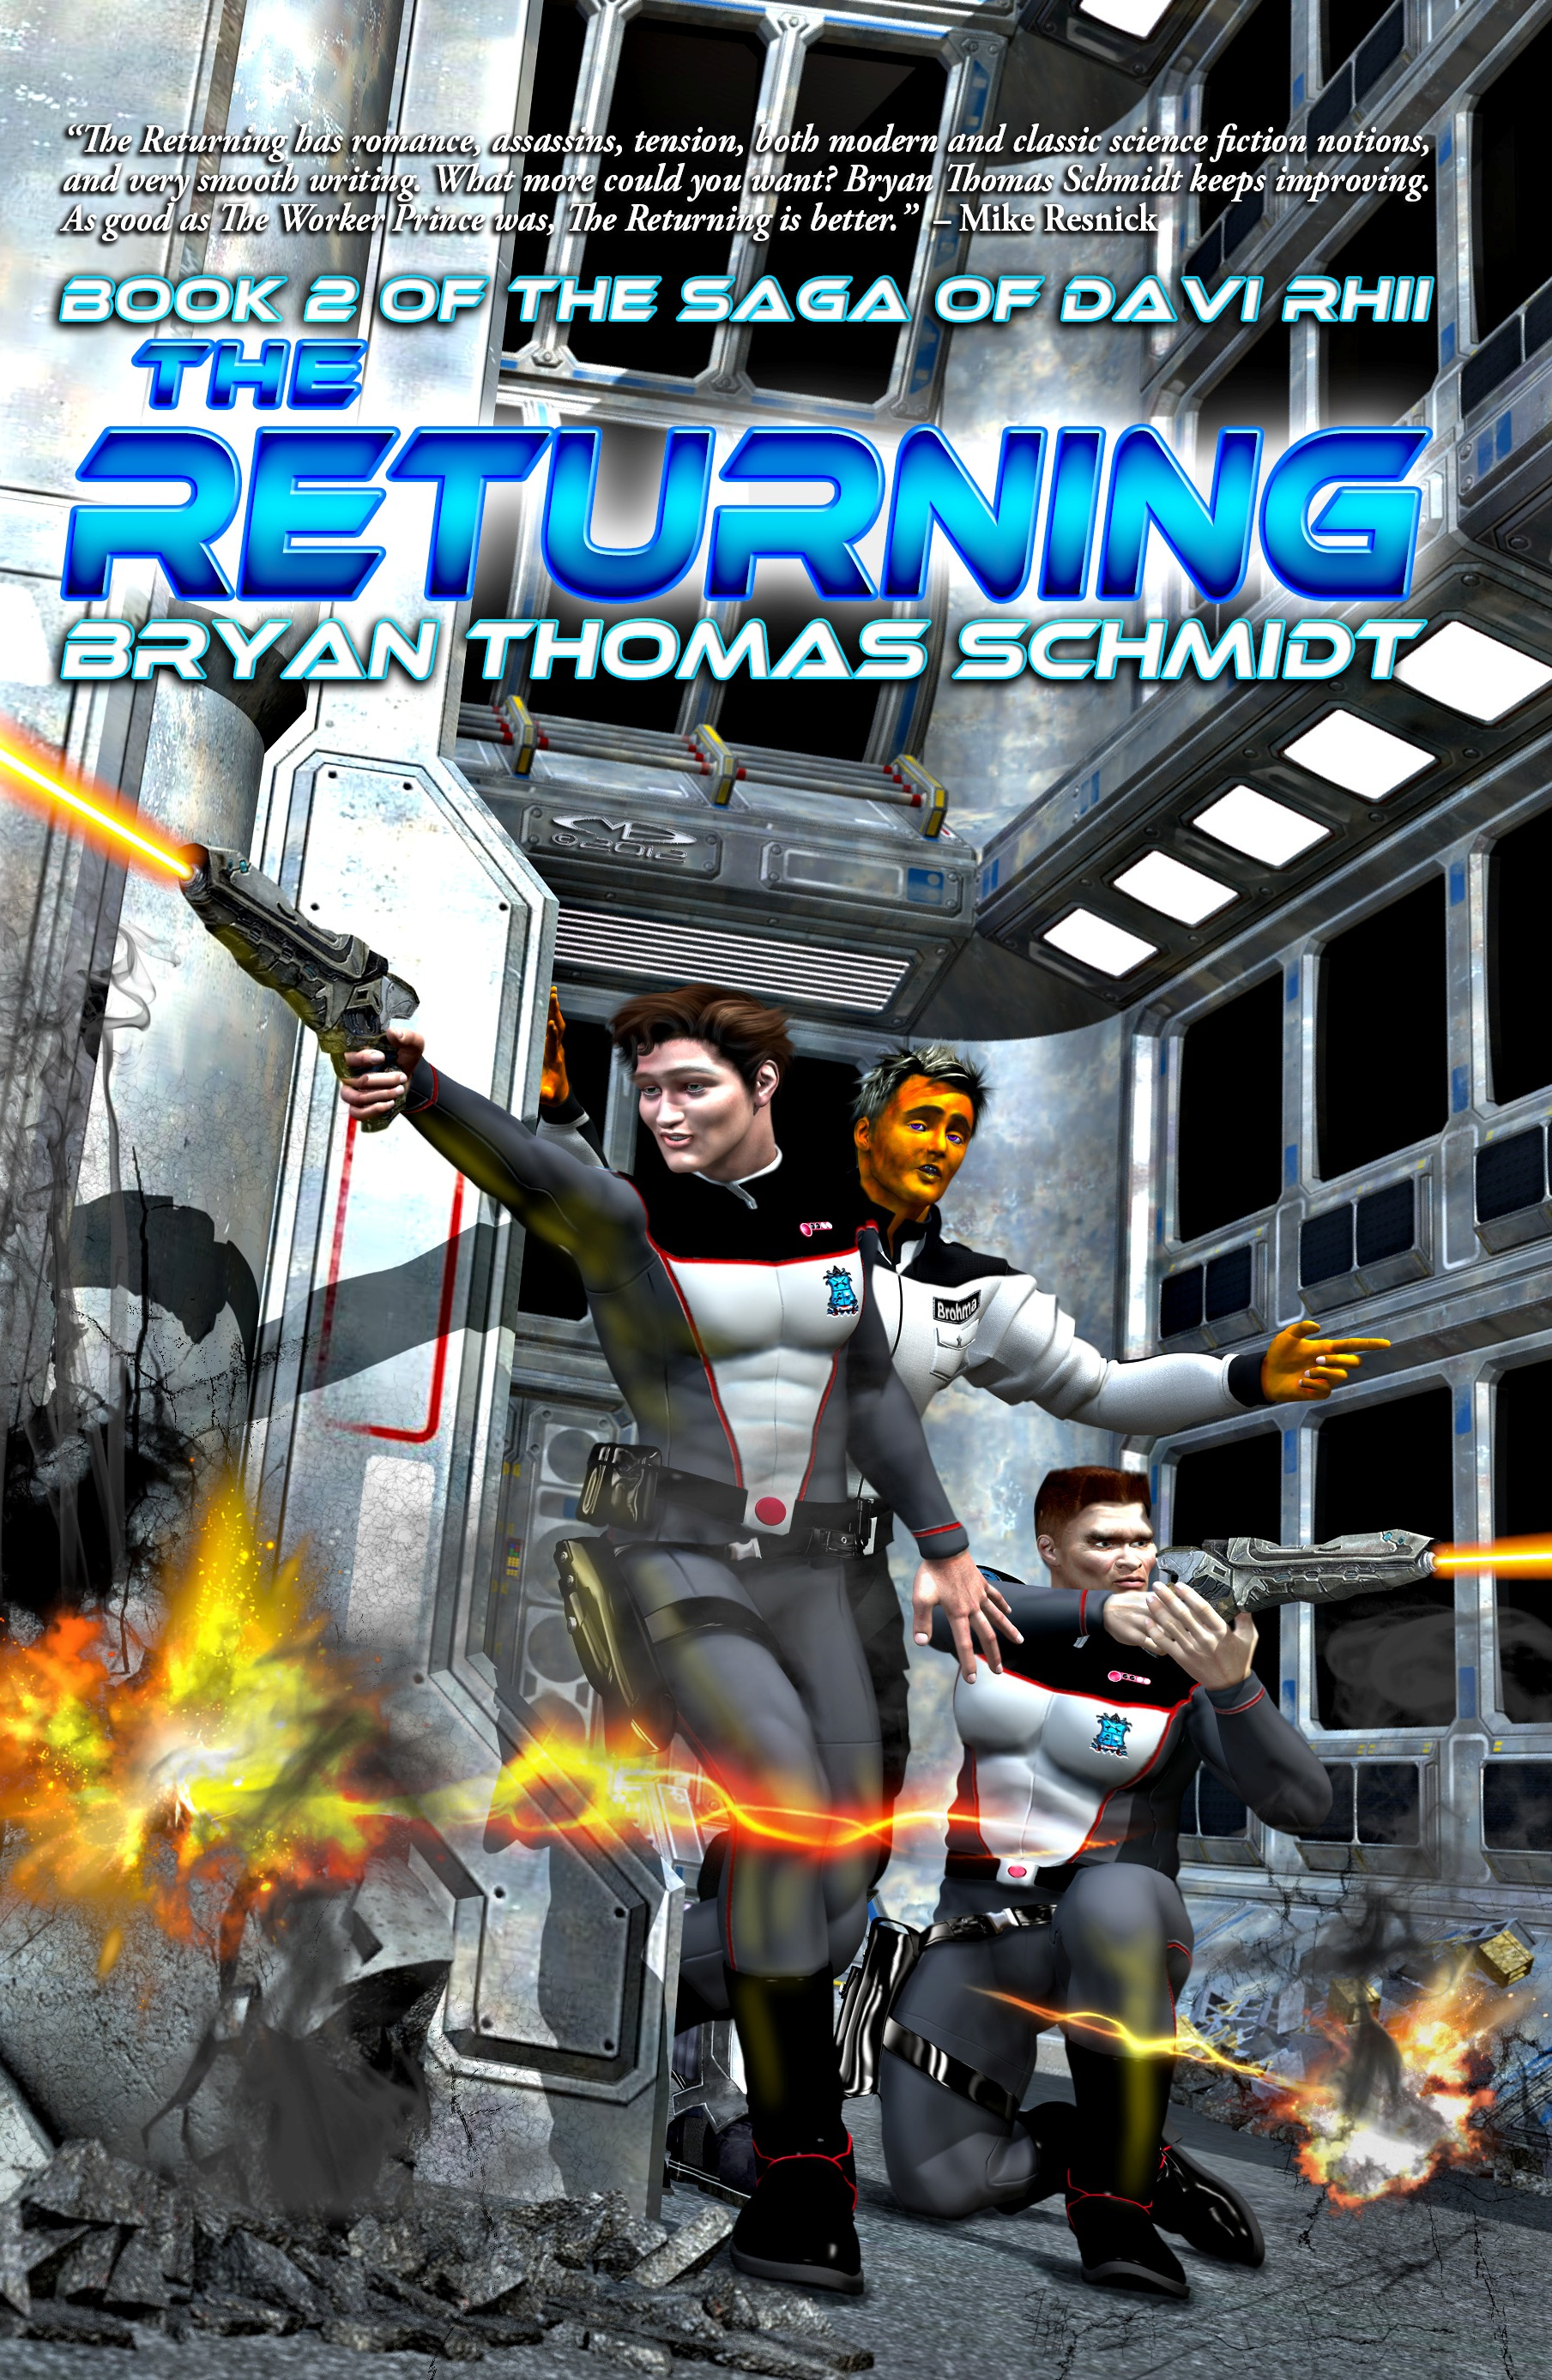 http://bryanthomasschmidt.net/wp-content/uploads/2012/06/The-Returning-Cover-front-only1.jpg